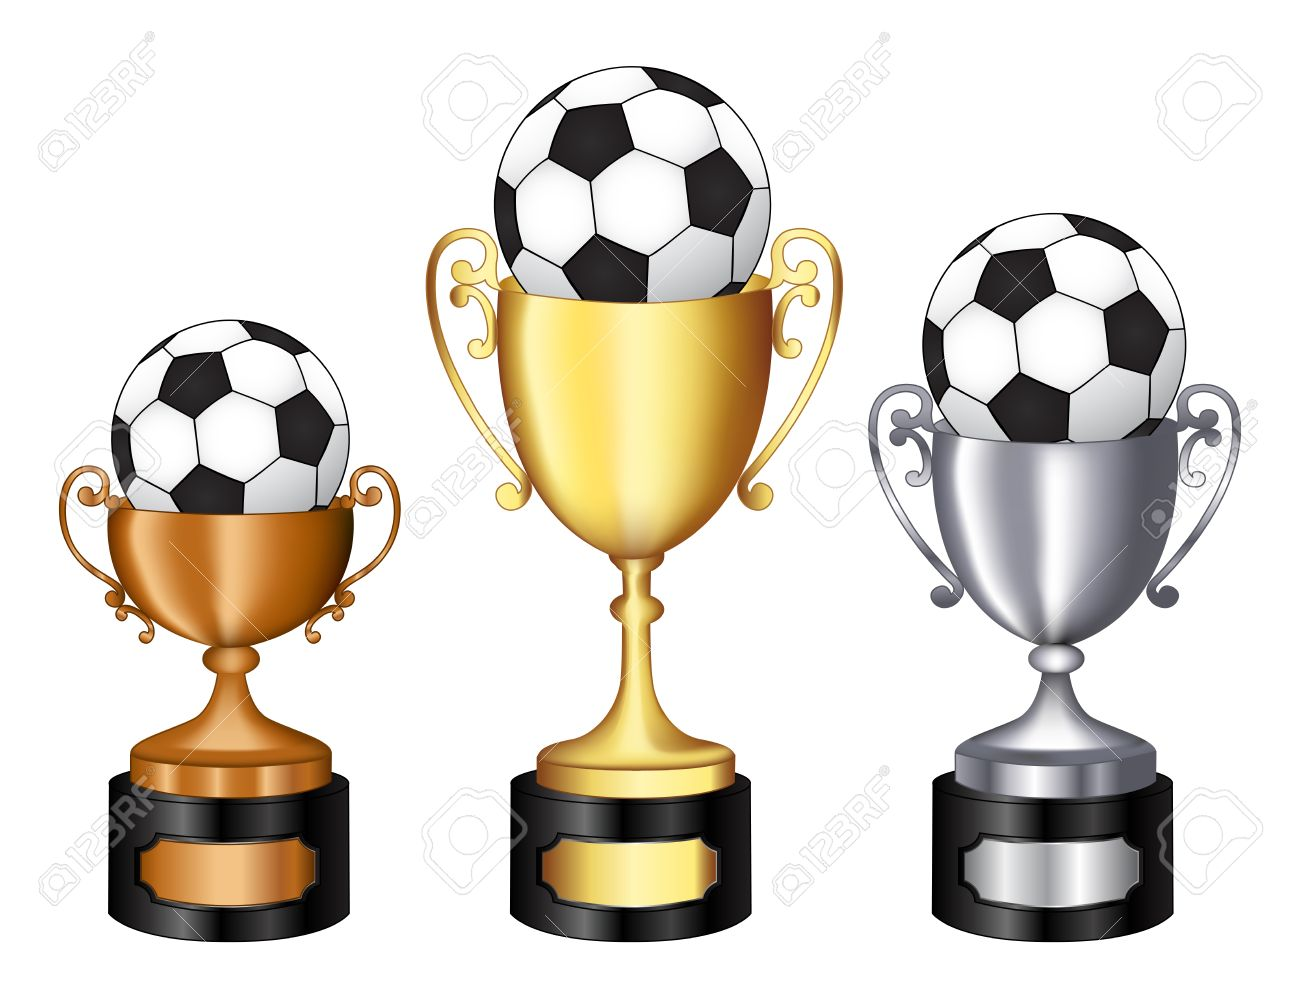 Gold Silver And Bronze Champion Trophy With Soccer Ball On It For 1st 2nd